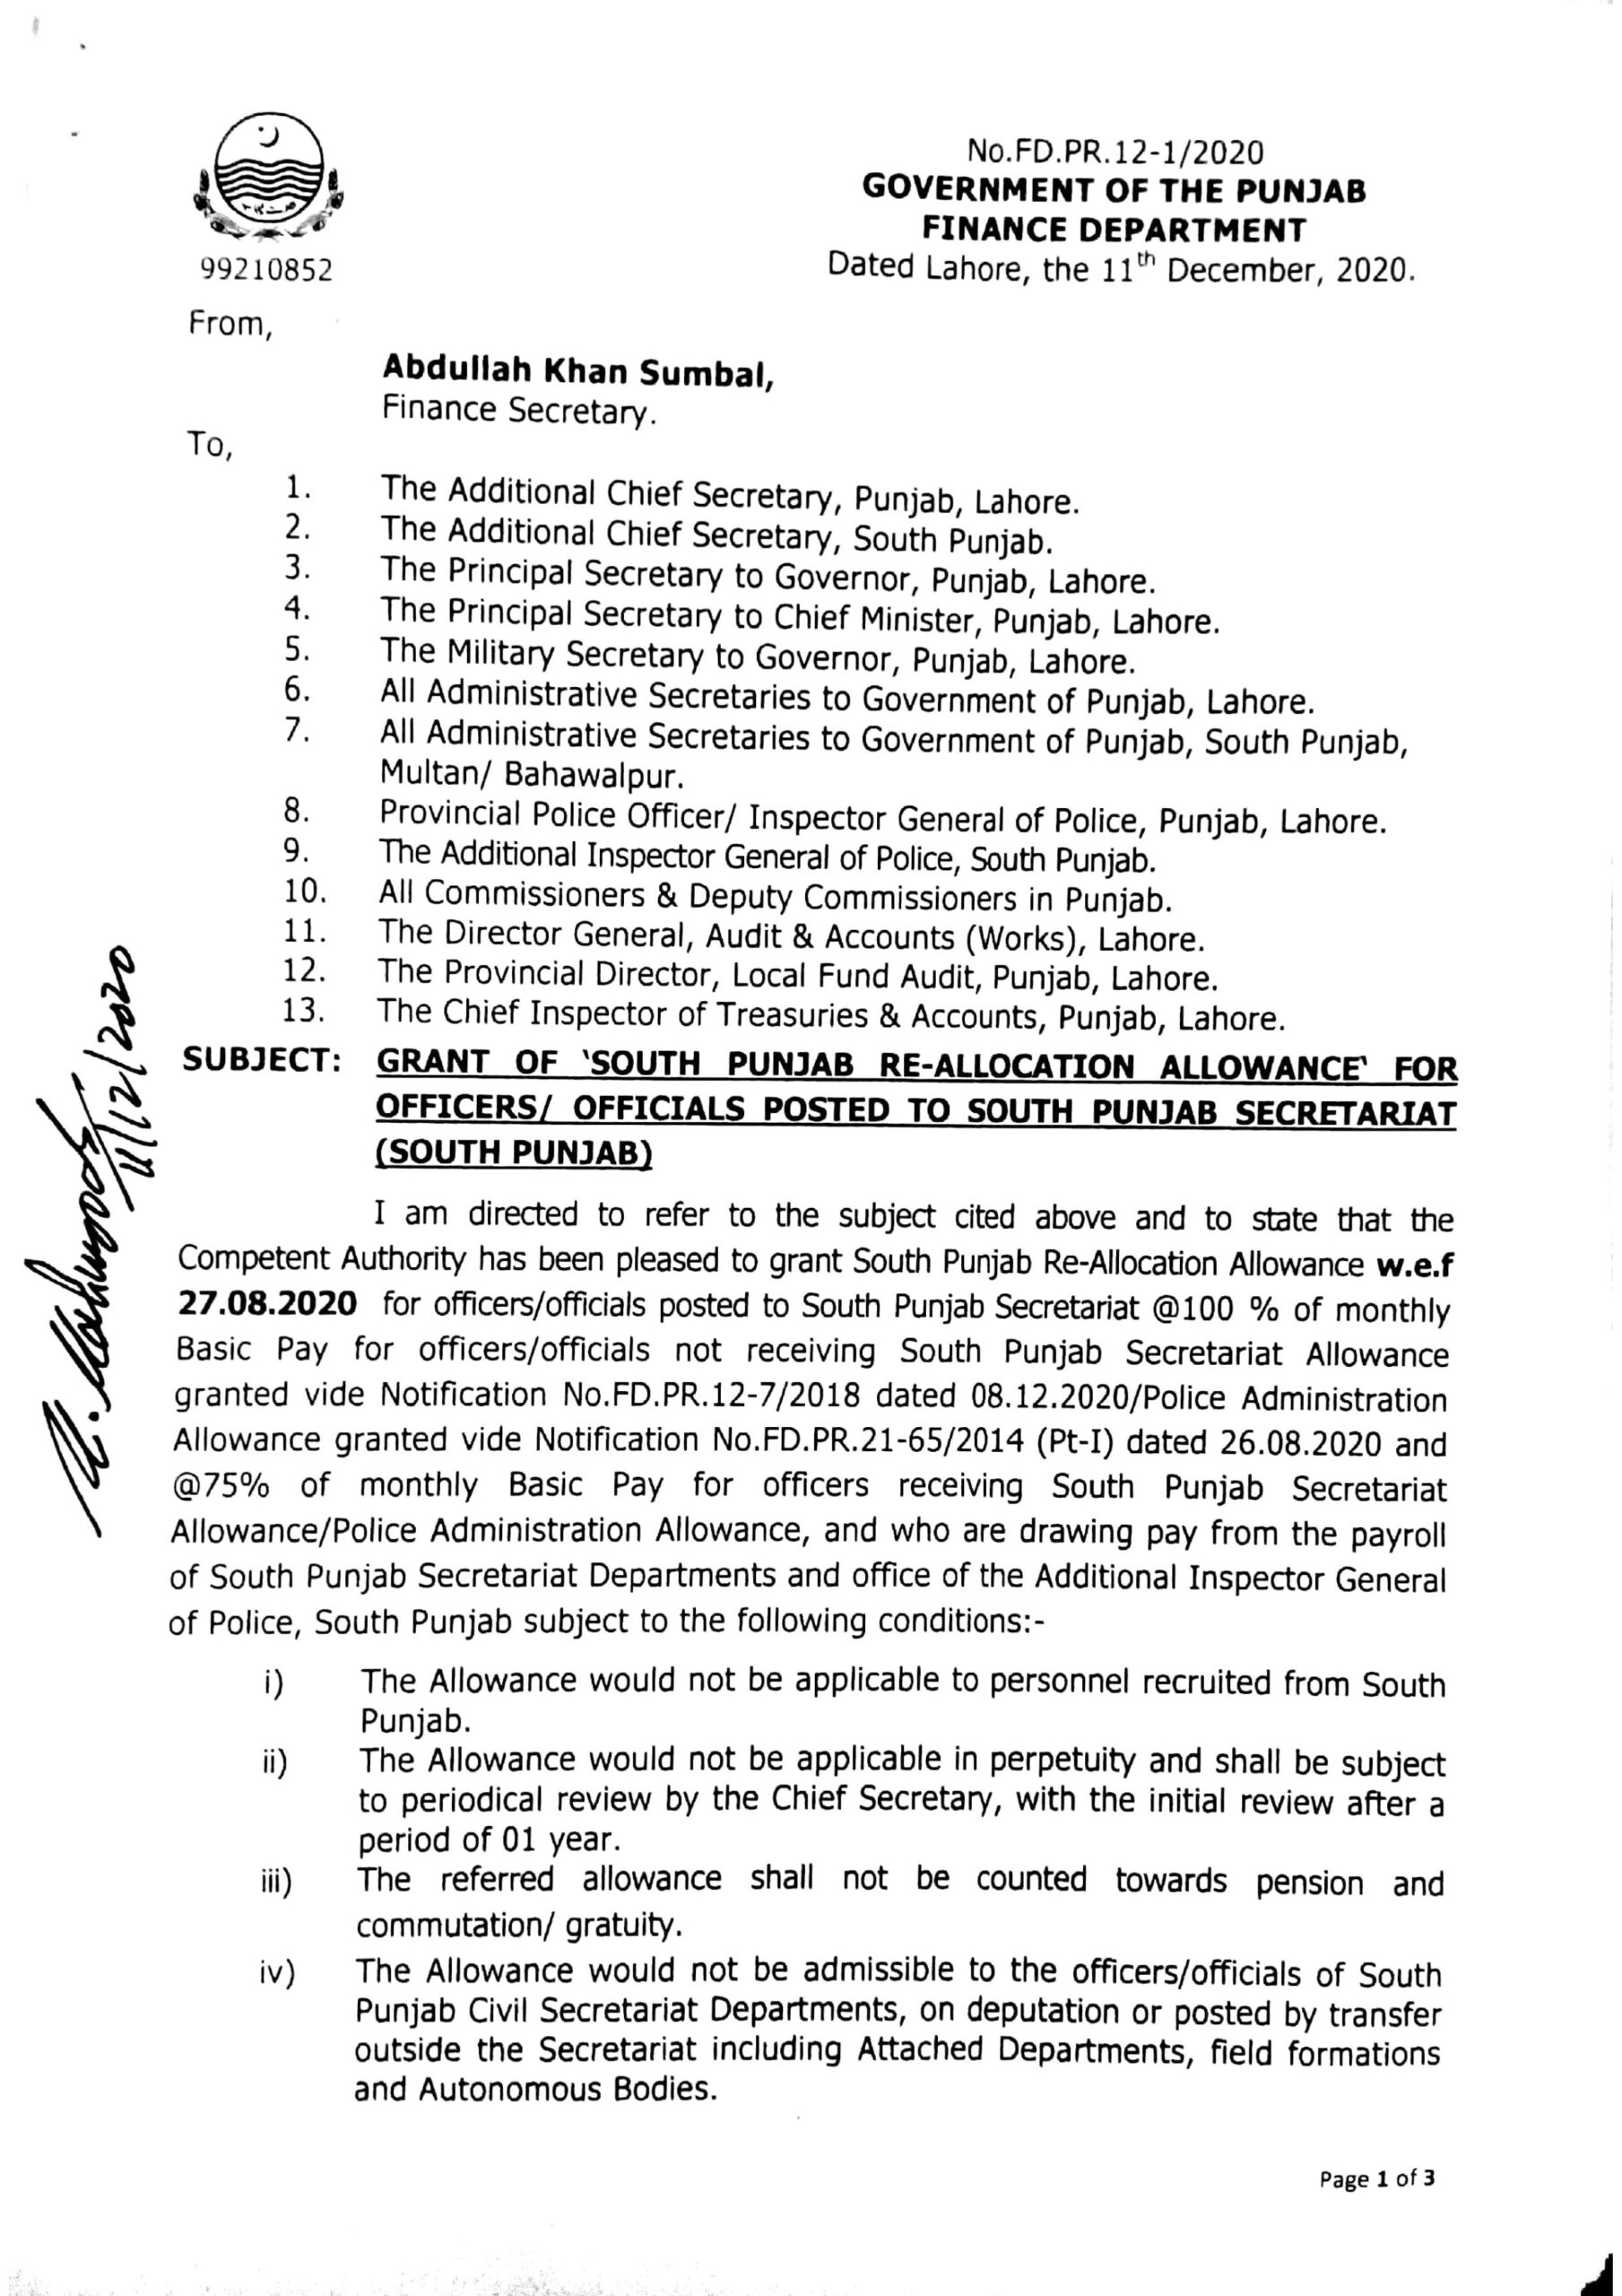 Notification of South Punjab Re-Allocation Allowance @100 % of Monthly Basic Pay